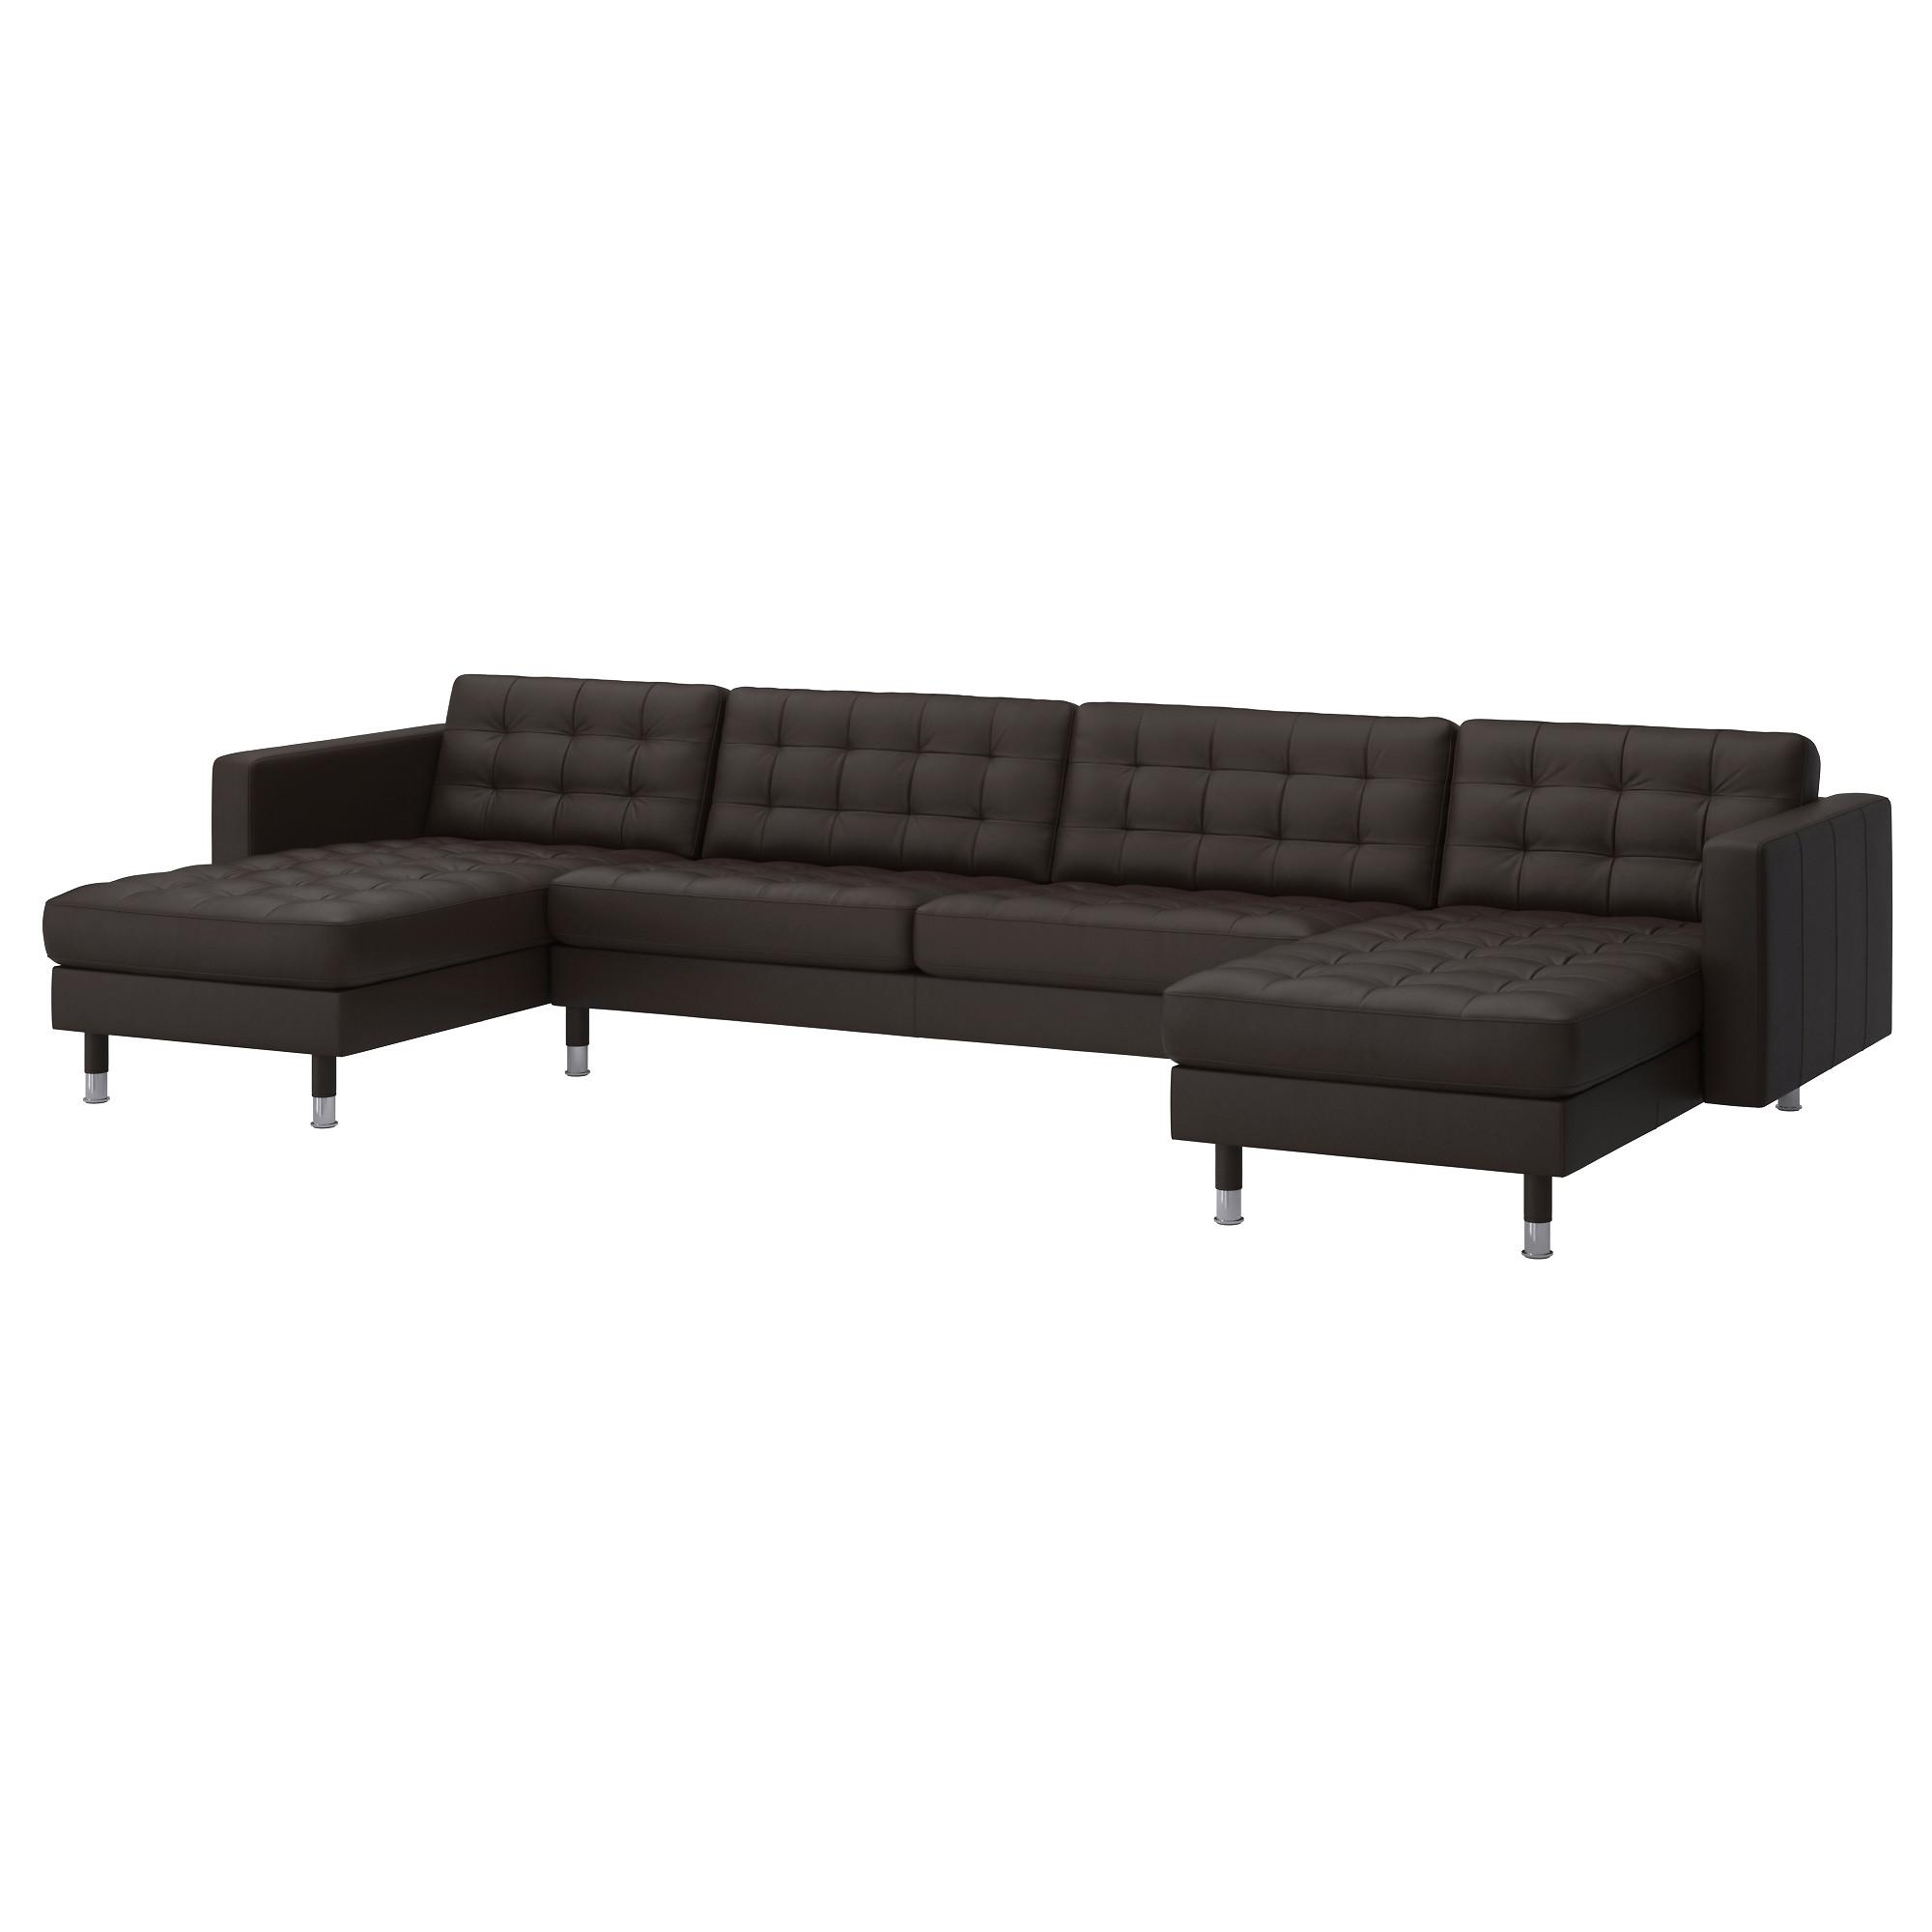 20 Top Manstad Sofa Bed With Storage From Ikea Sofa Ideas